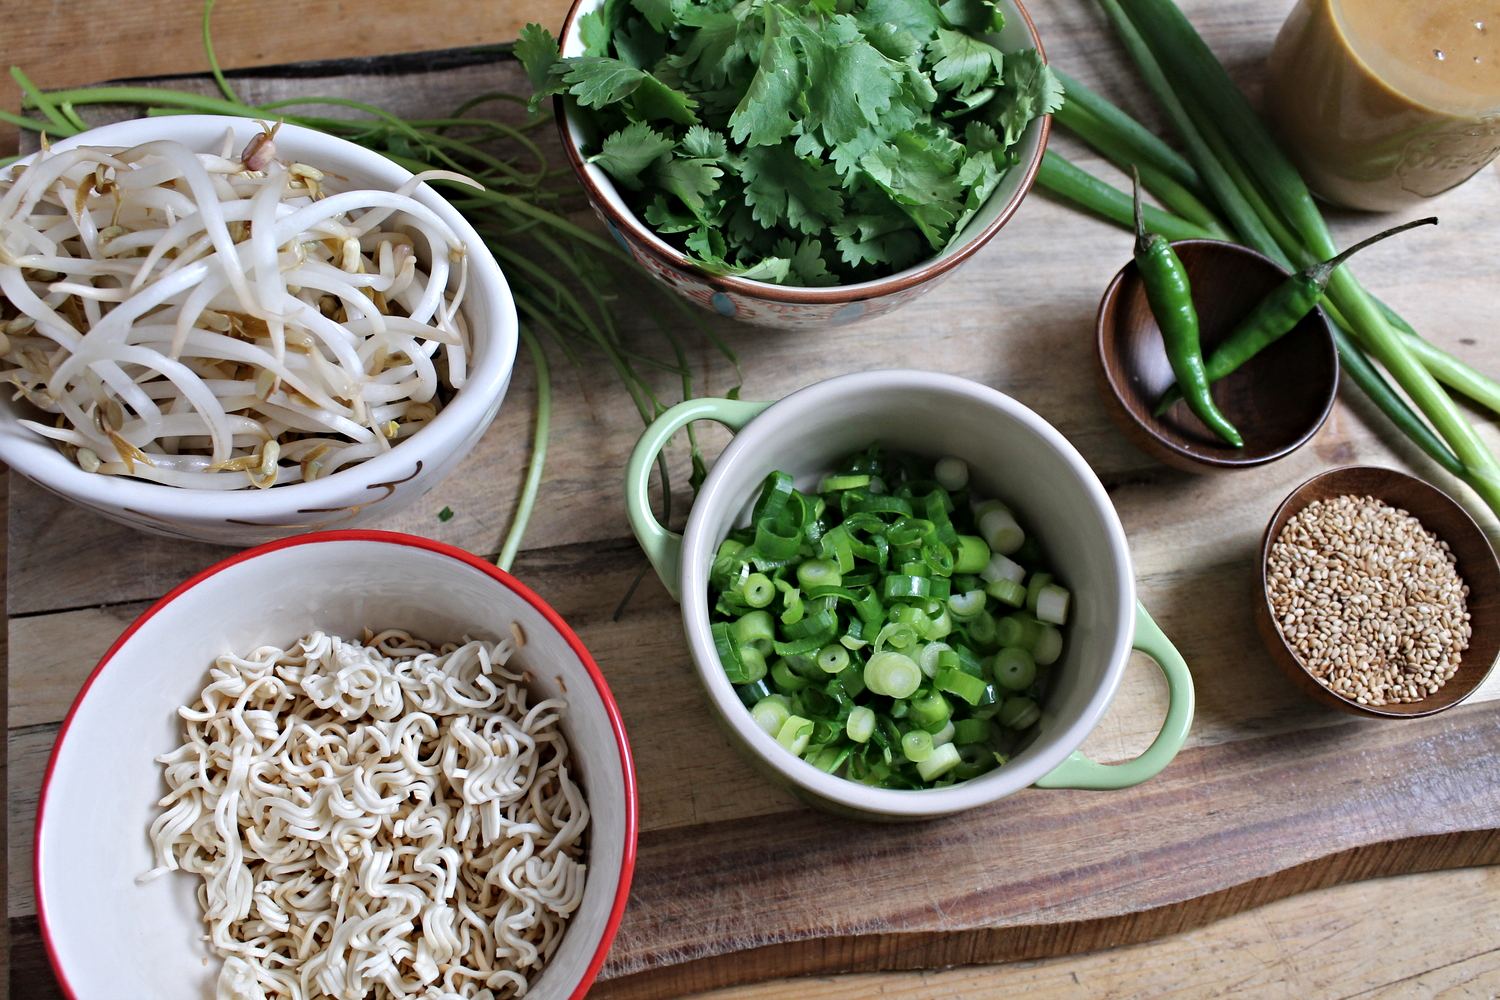 Napa Cabbage Salad Mise En Place | www.hungryinlove.com